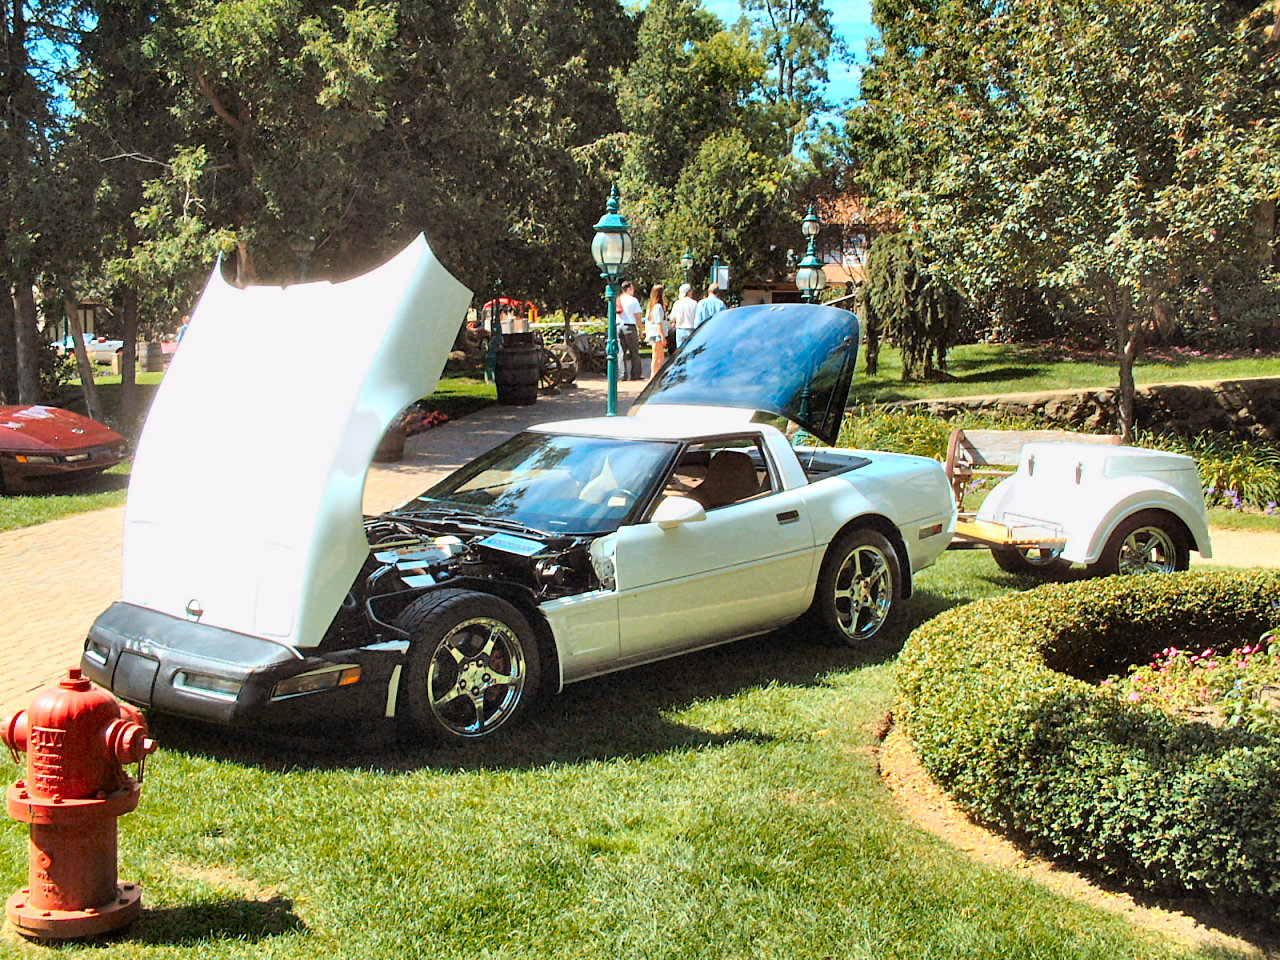 1990 Chevrolet Corvette ZR1 Coupe With Trailer White Fvl Canterbury Village Car Show F